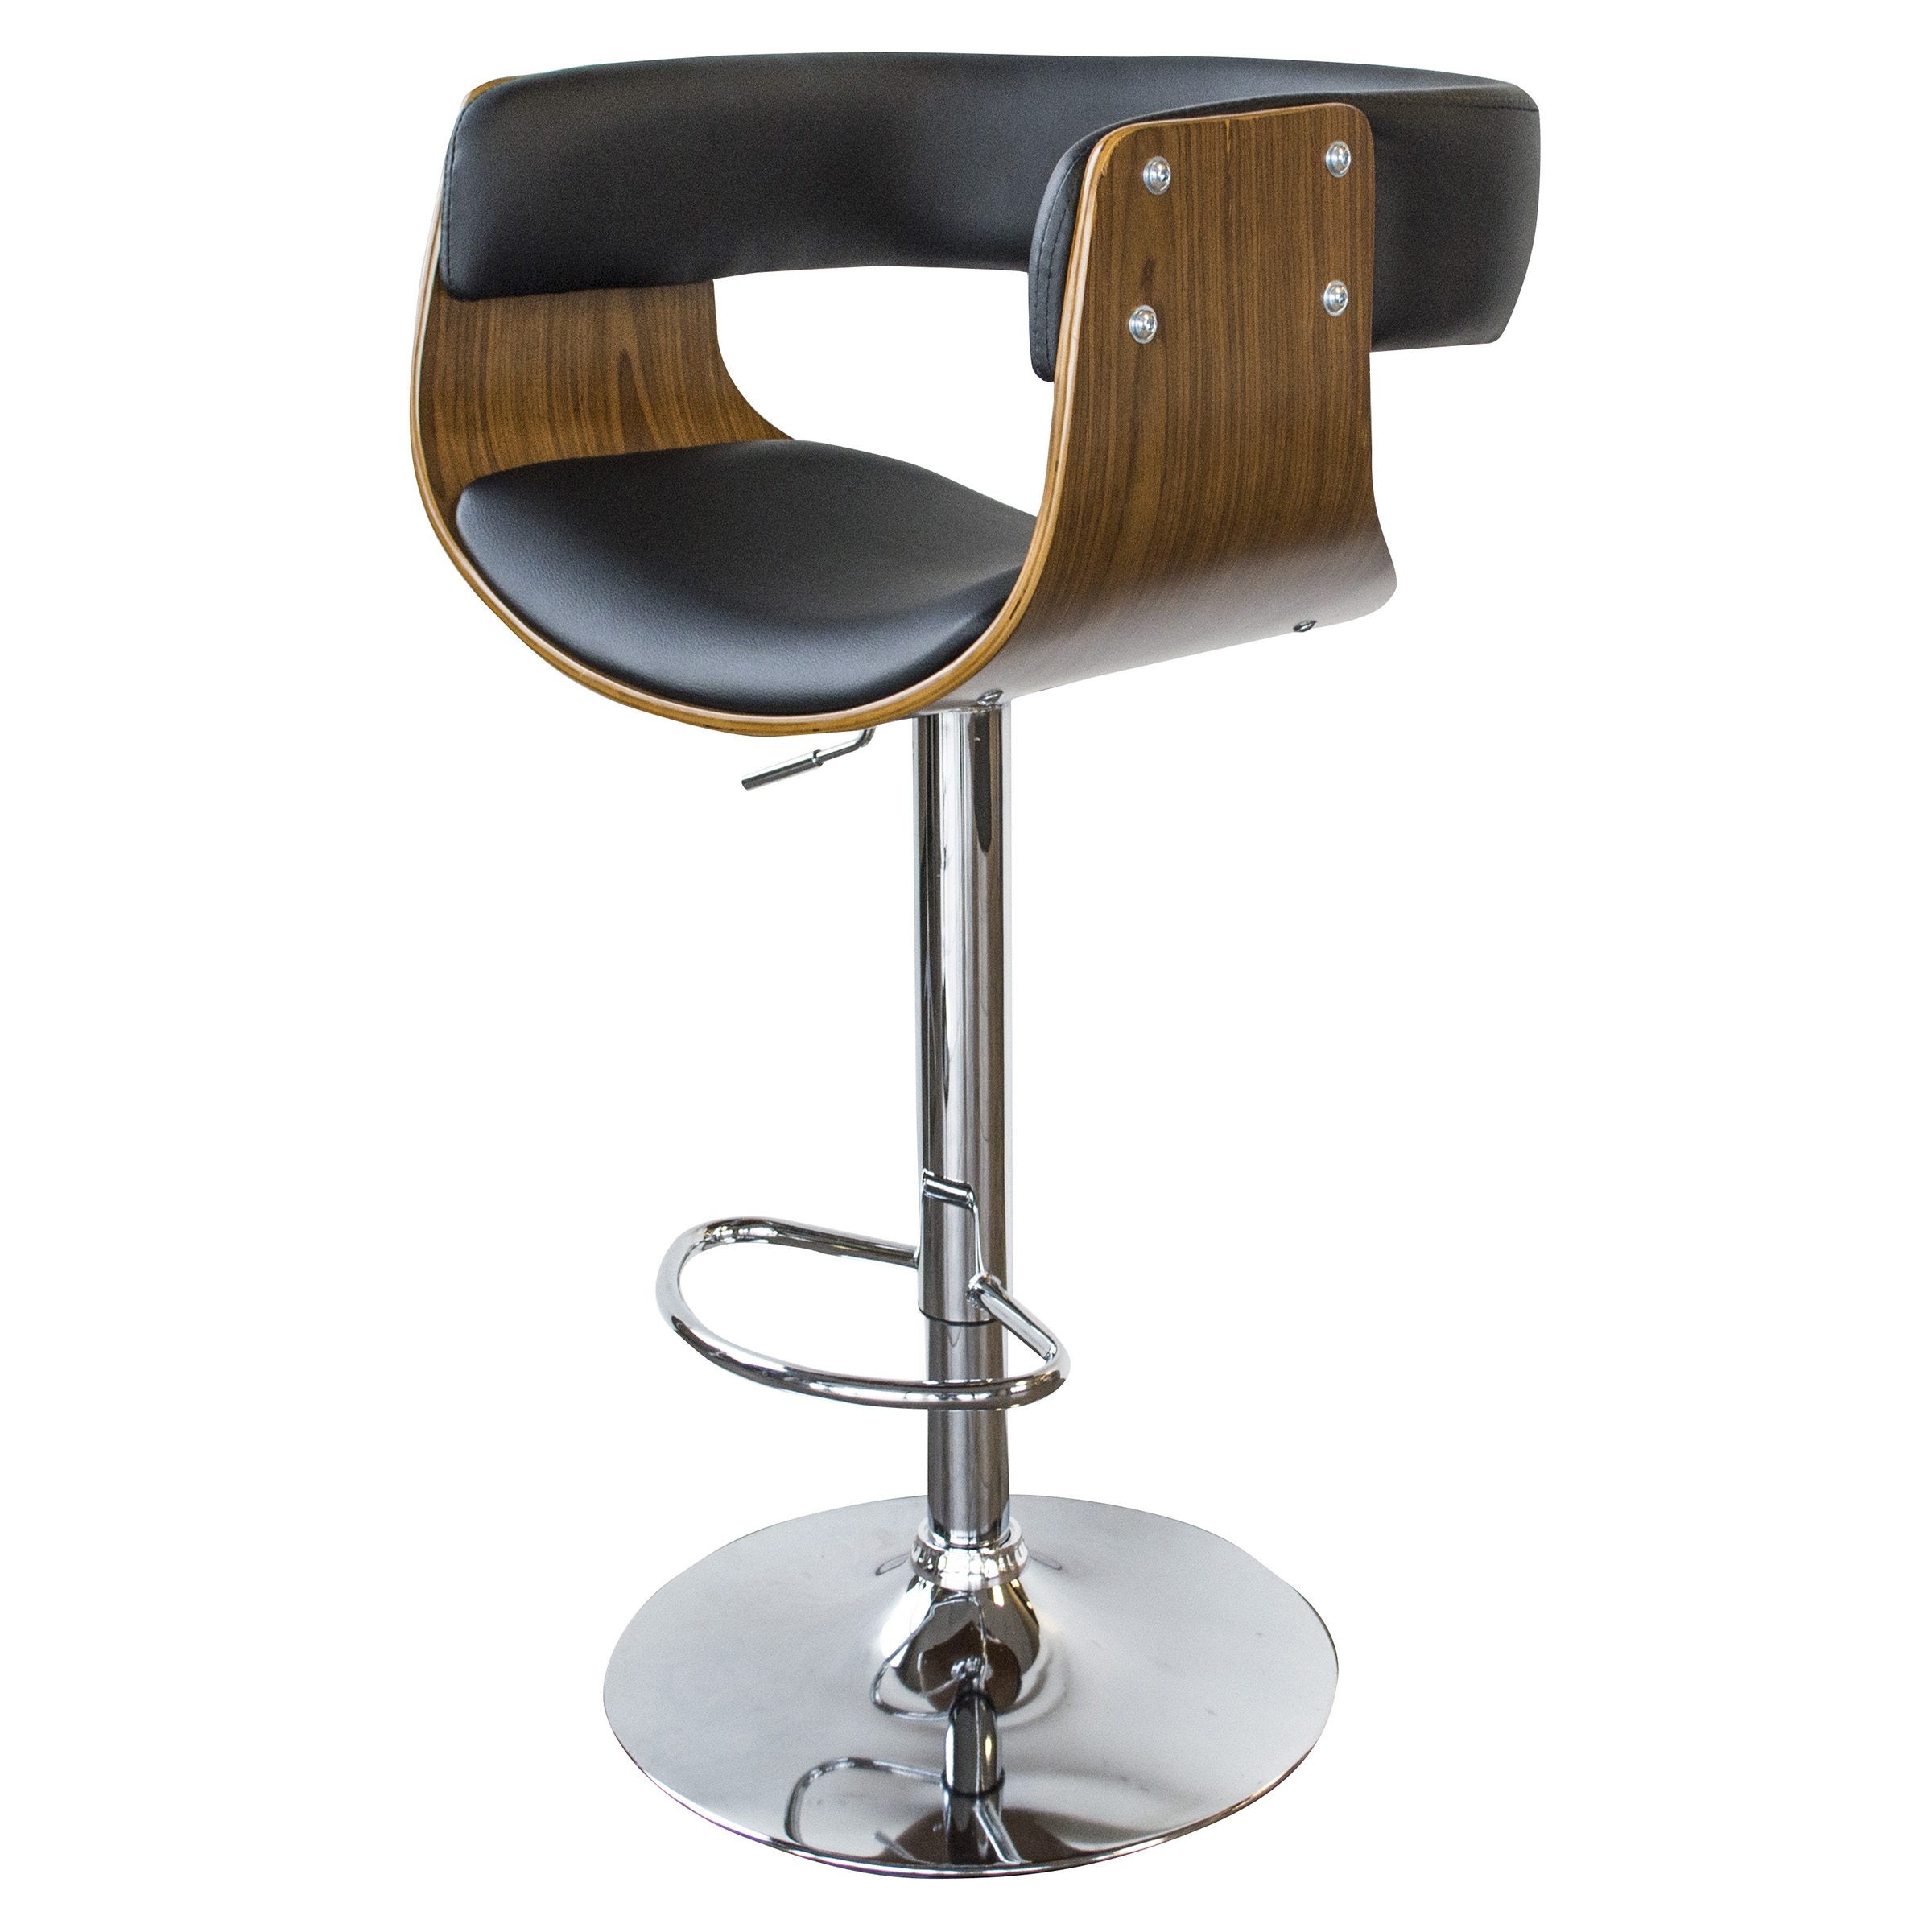 BSBWLB4 Bent Wood w/PU Leather Seat